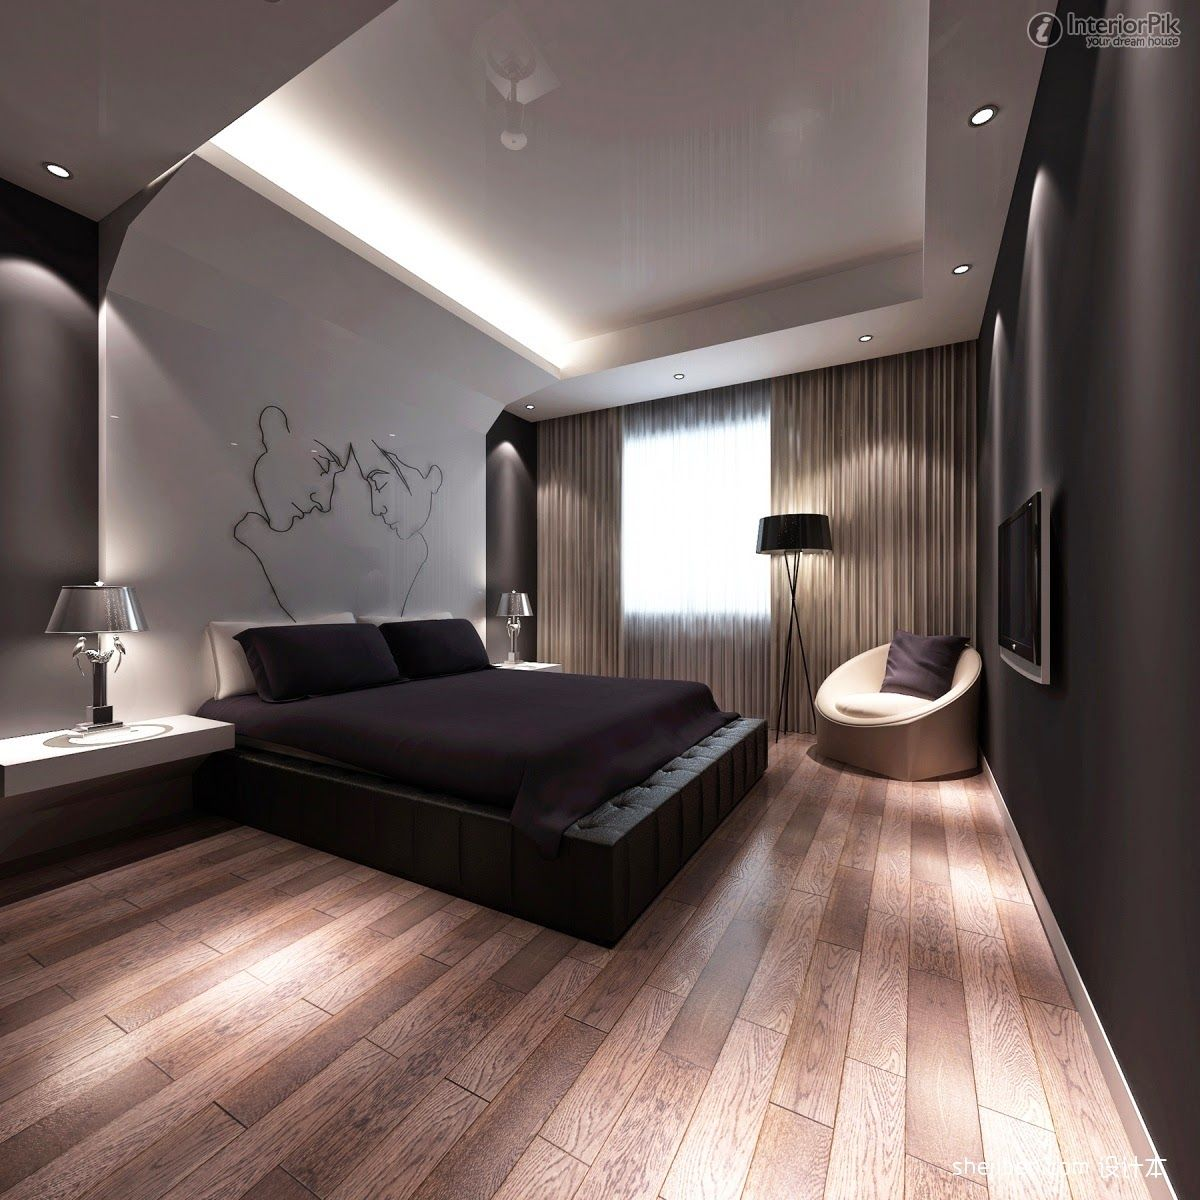 modern bedroom designs%0A Bedroom Design  Superb Modern Bedroom Designs Ideas      Interior Decorating  Furniture With Reccessed Light Also Engineering Wood Flooring And Standing  Lamp